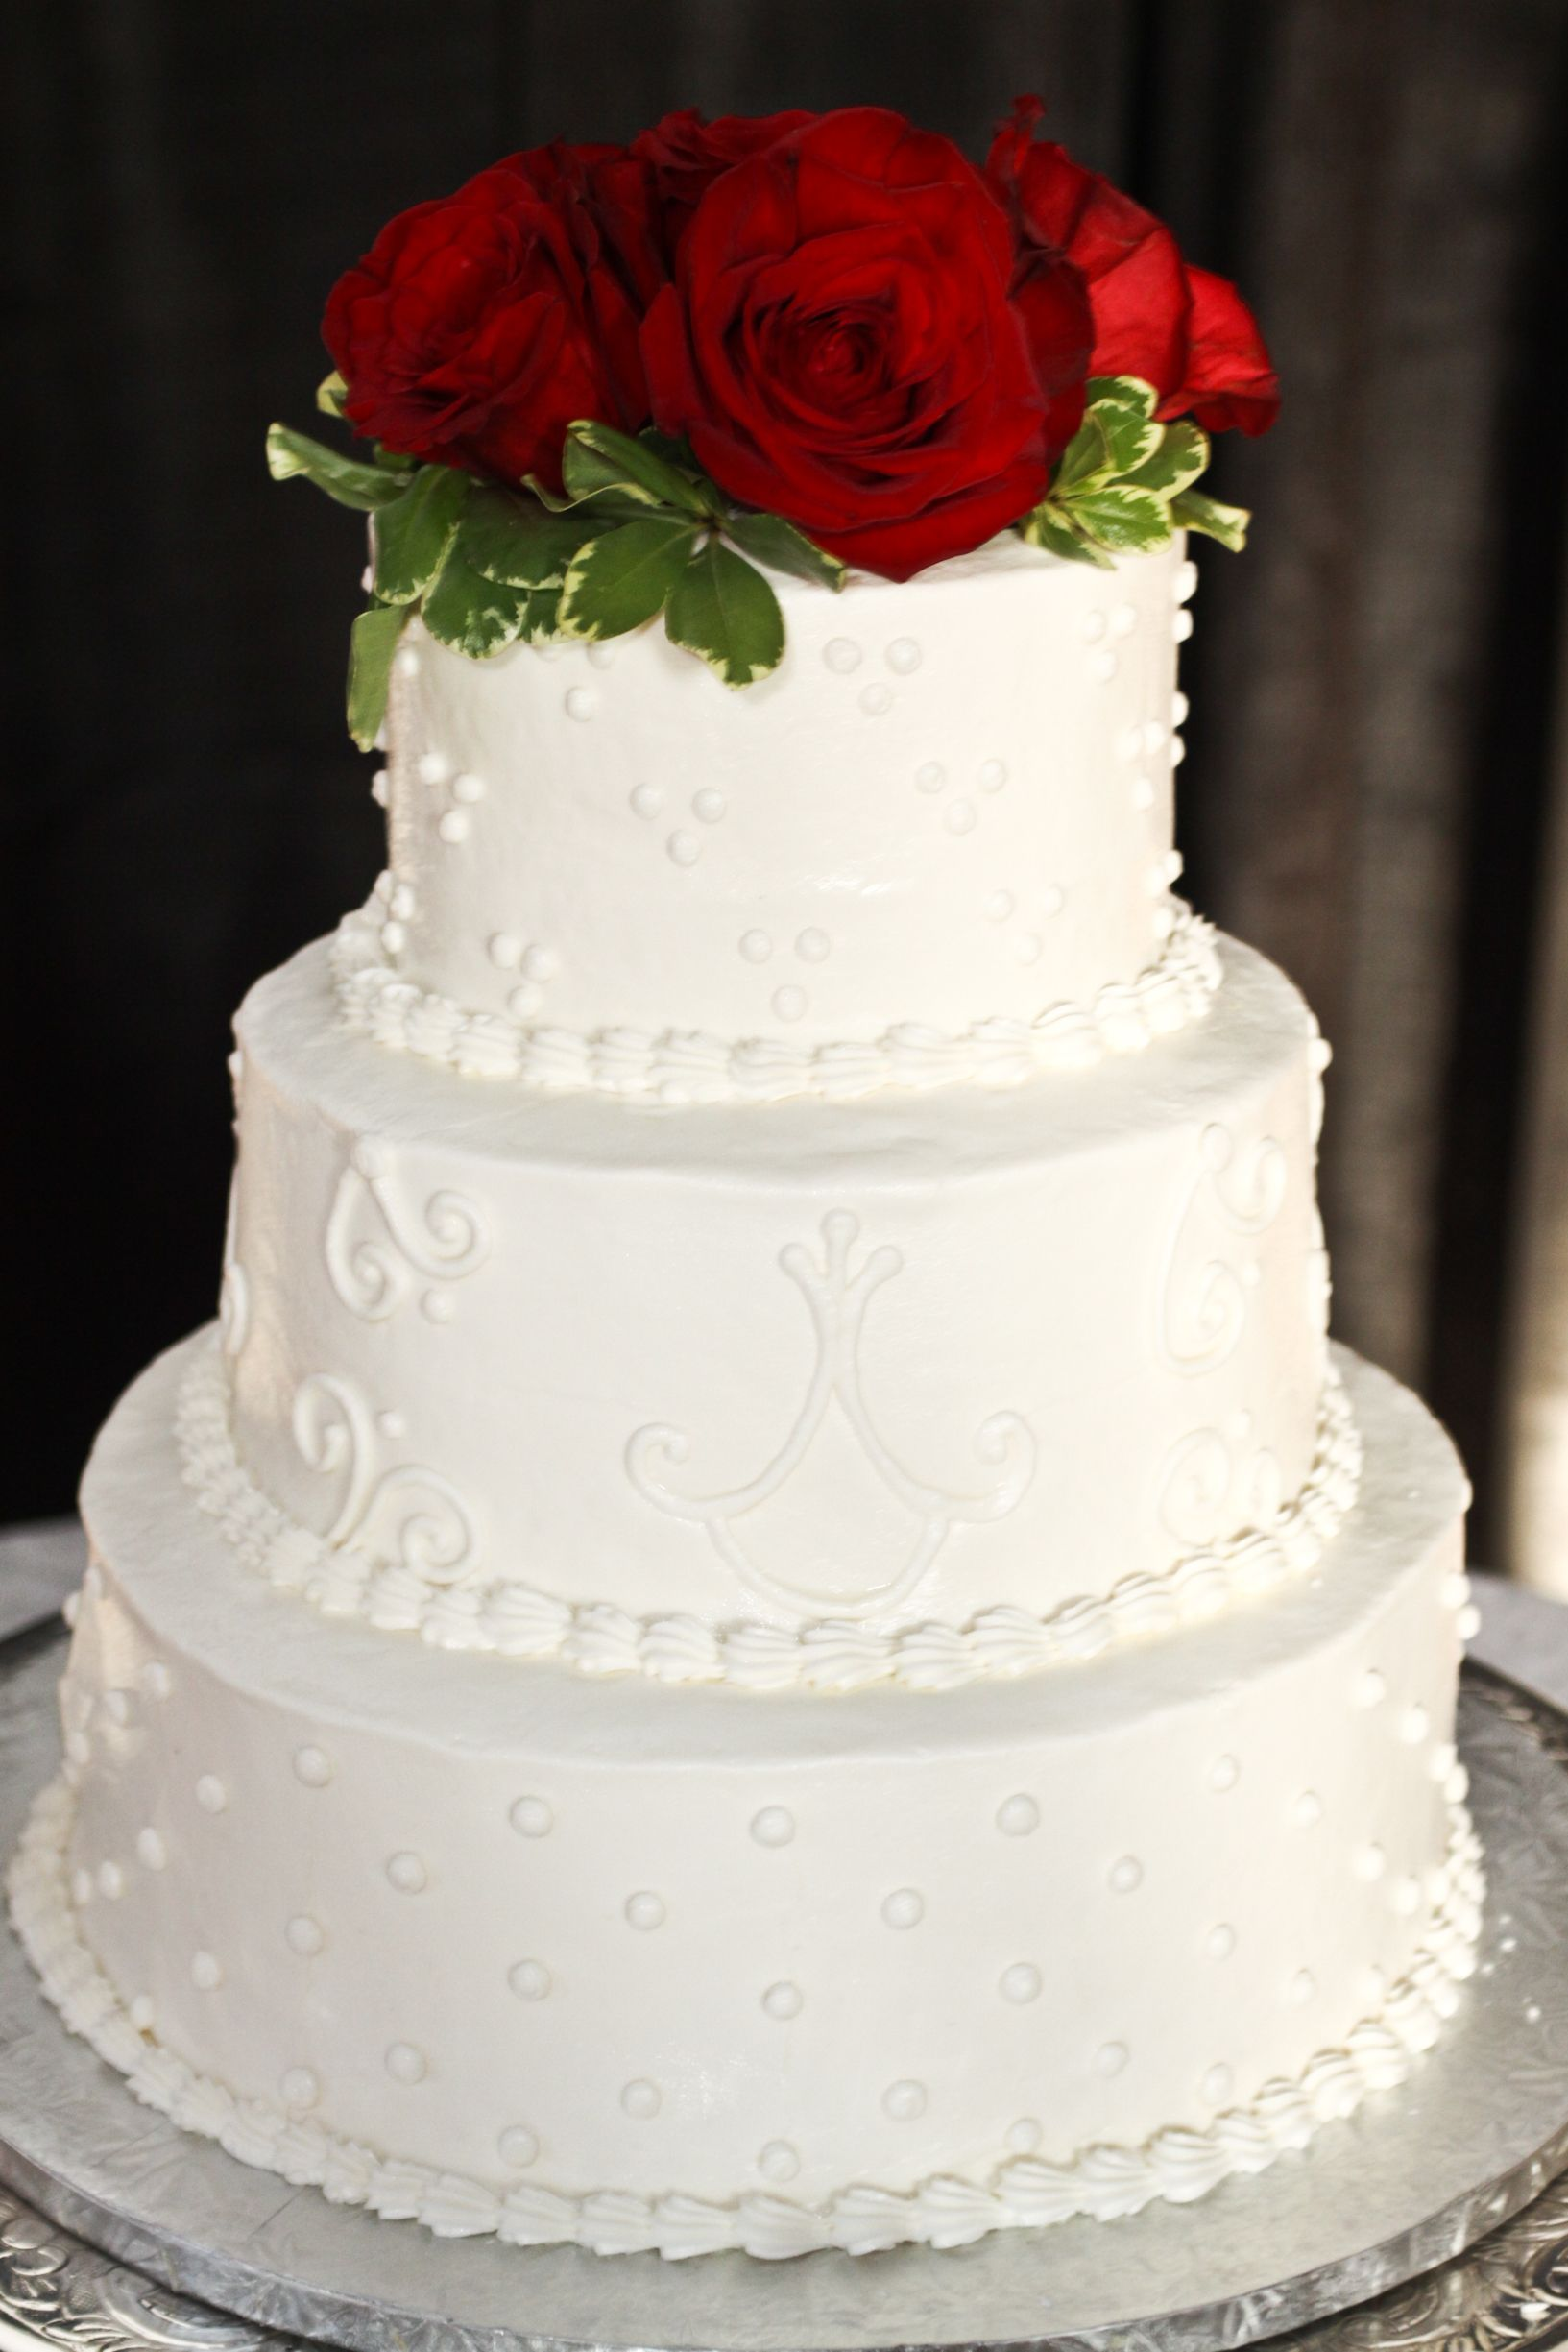 3 Tier Round Wedding Cake with Design and Red Roses | Cakes and ...